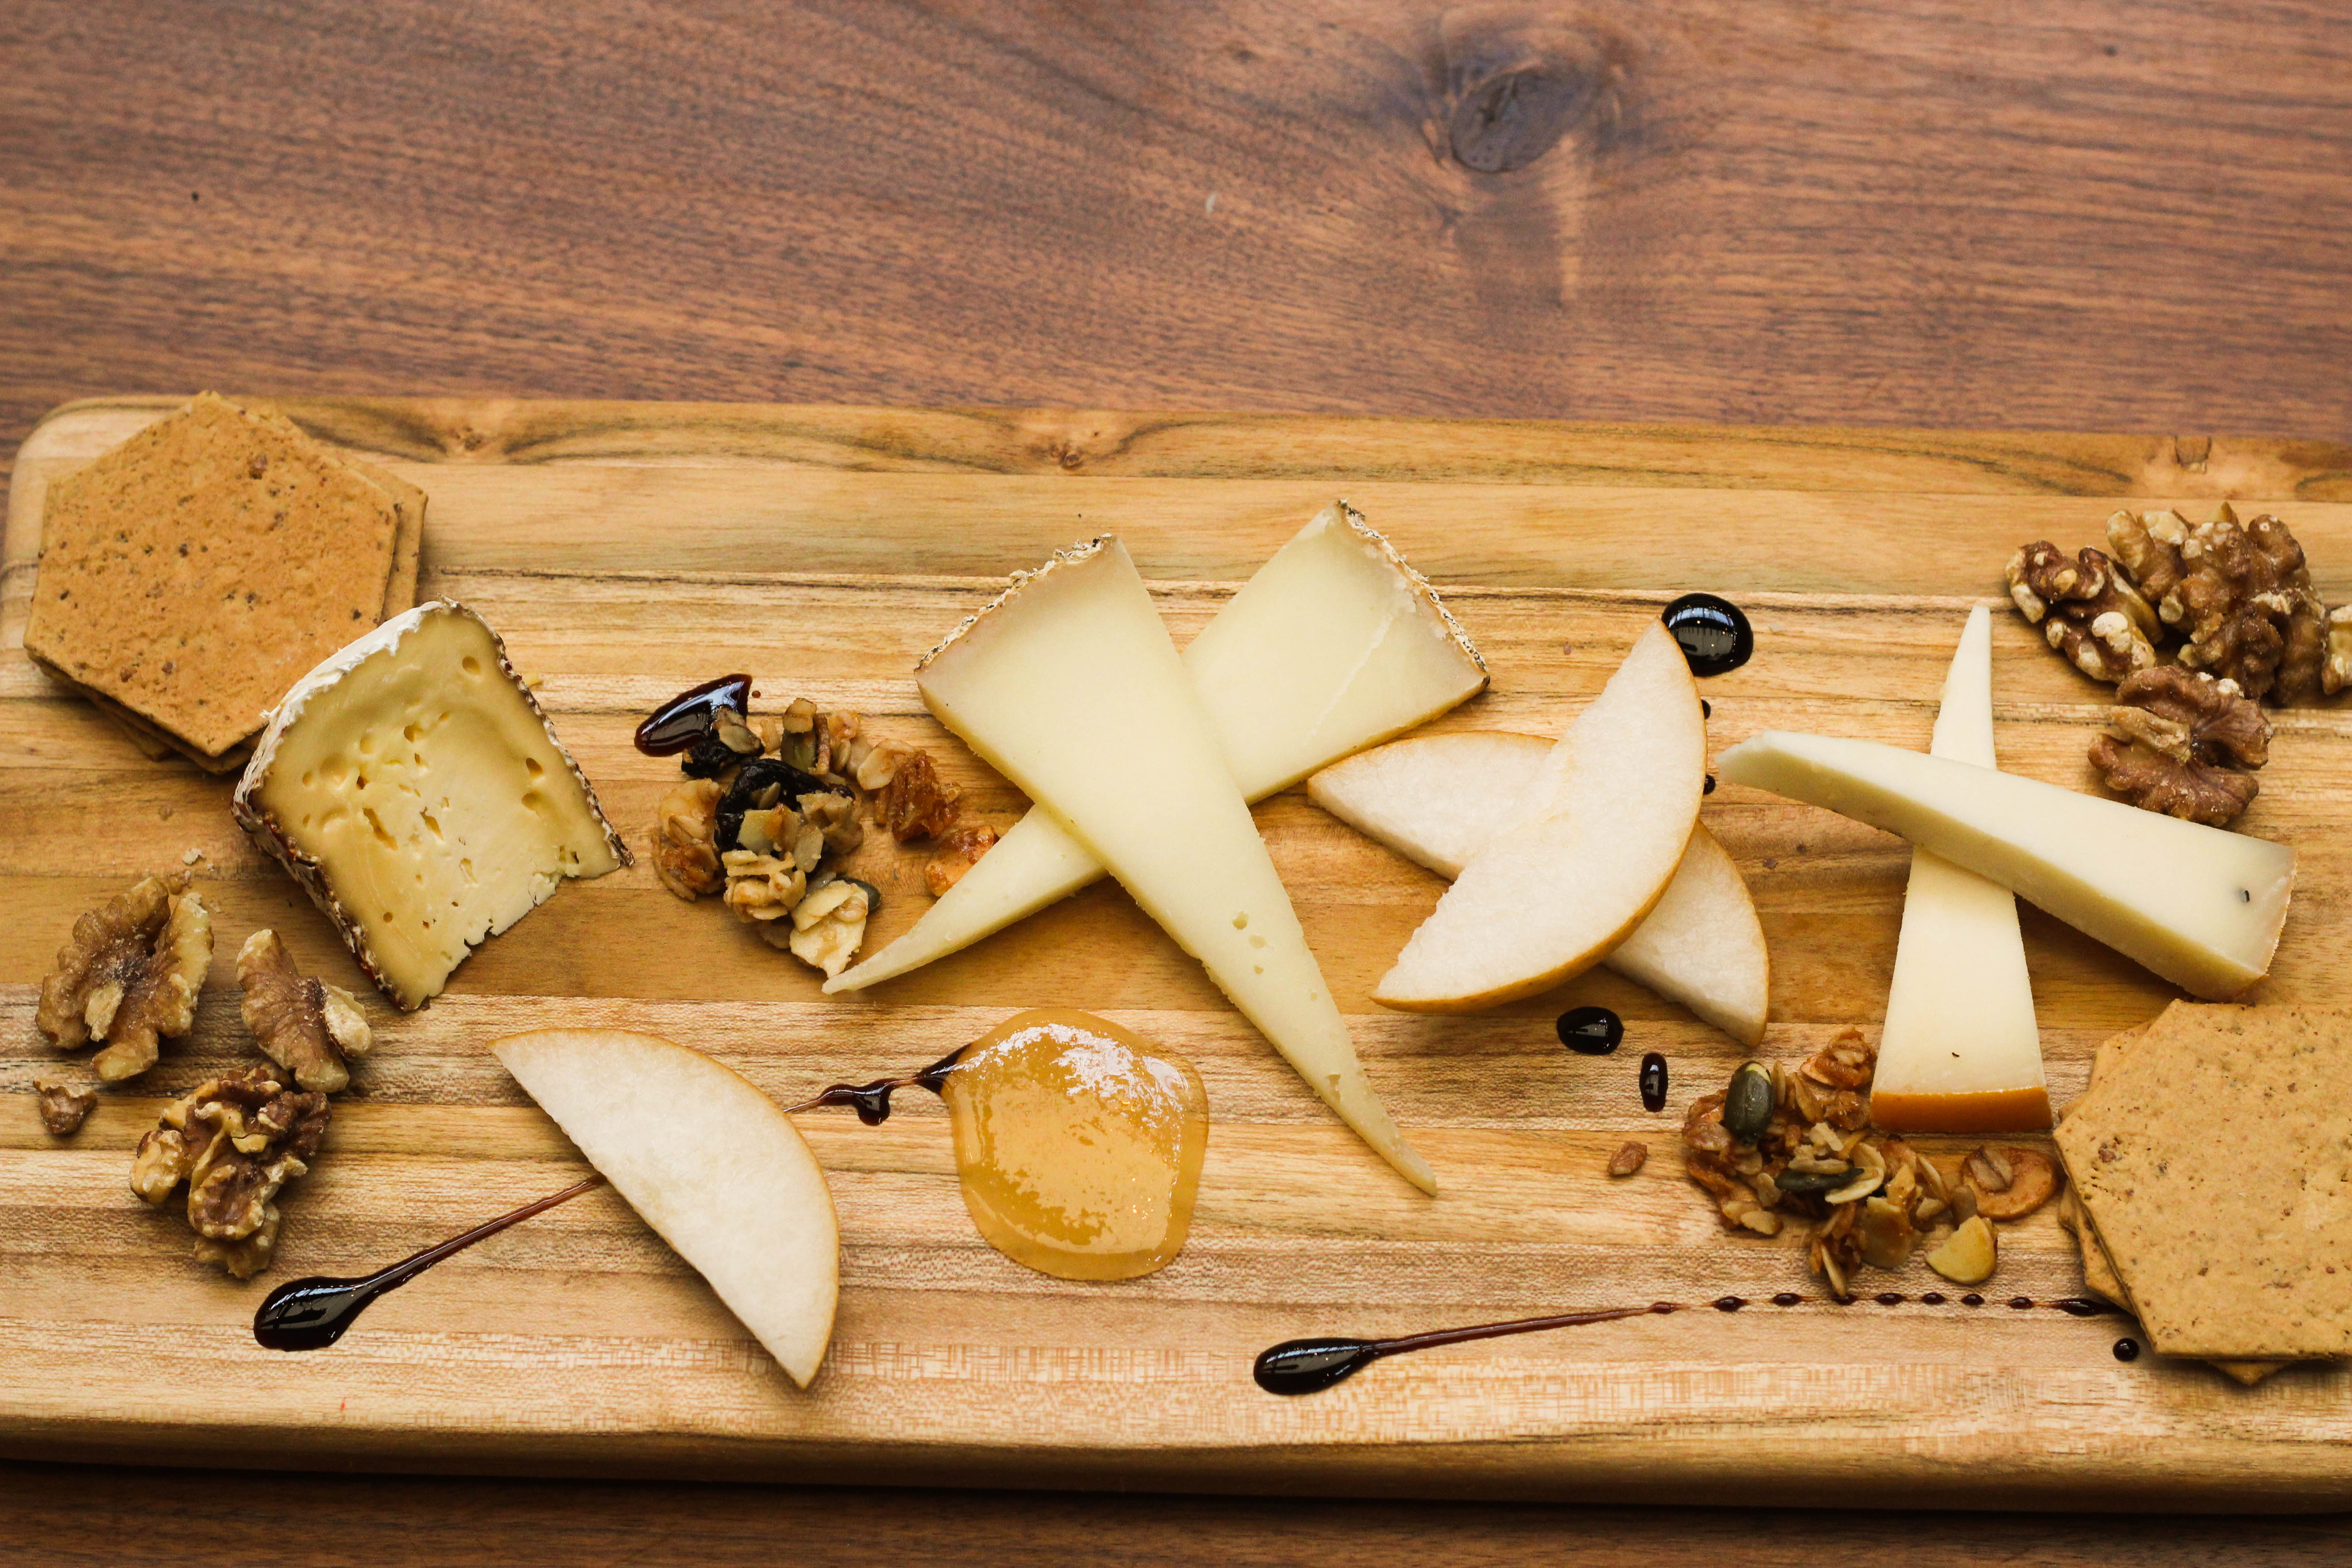 cheese plate from salumeria